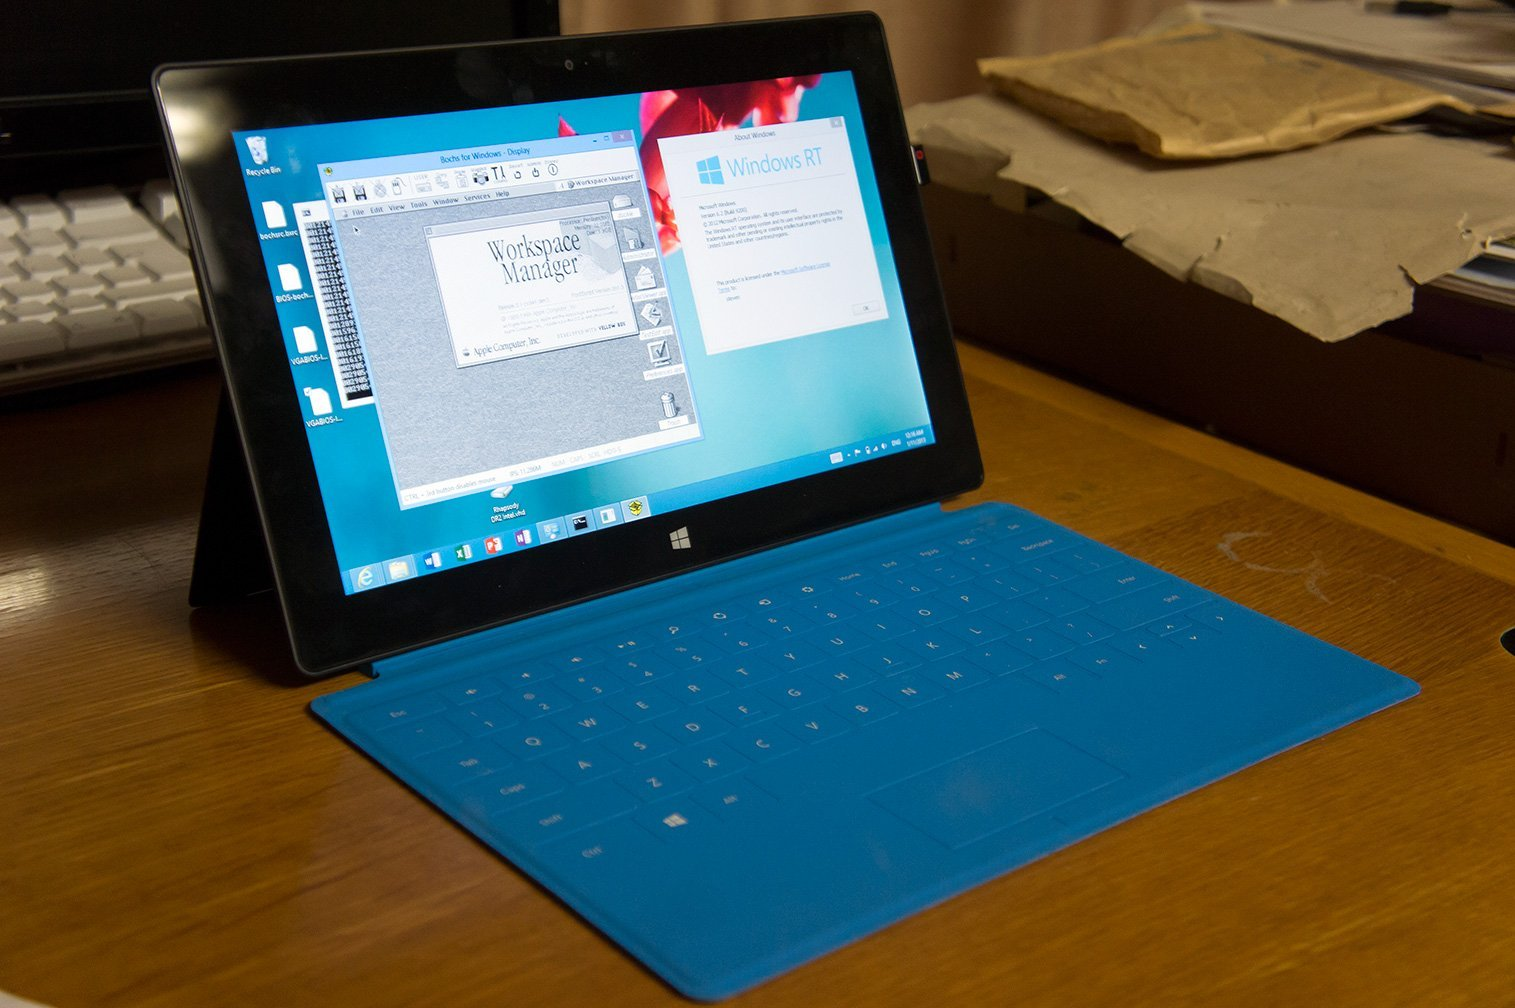 microsofts-surface-rt-tablets-wont-be-upgraded-to-windows-10_02